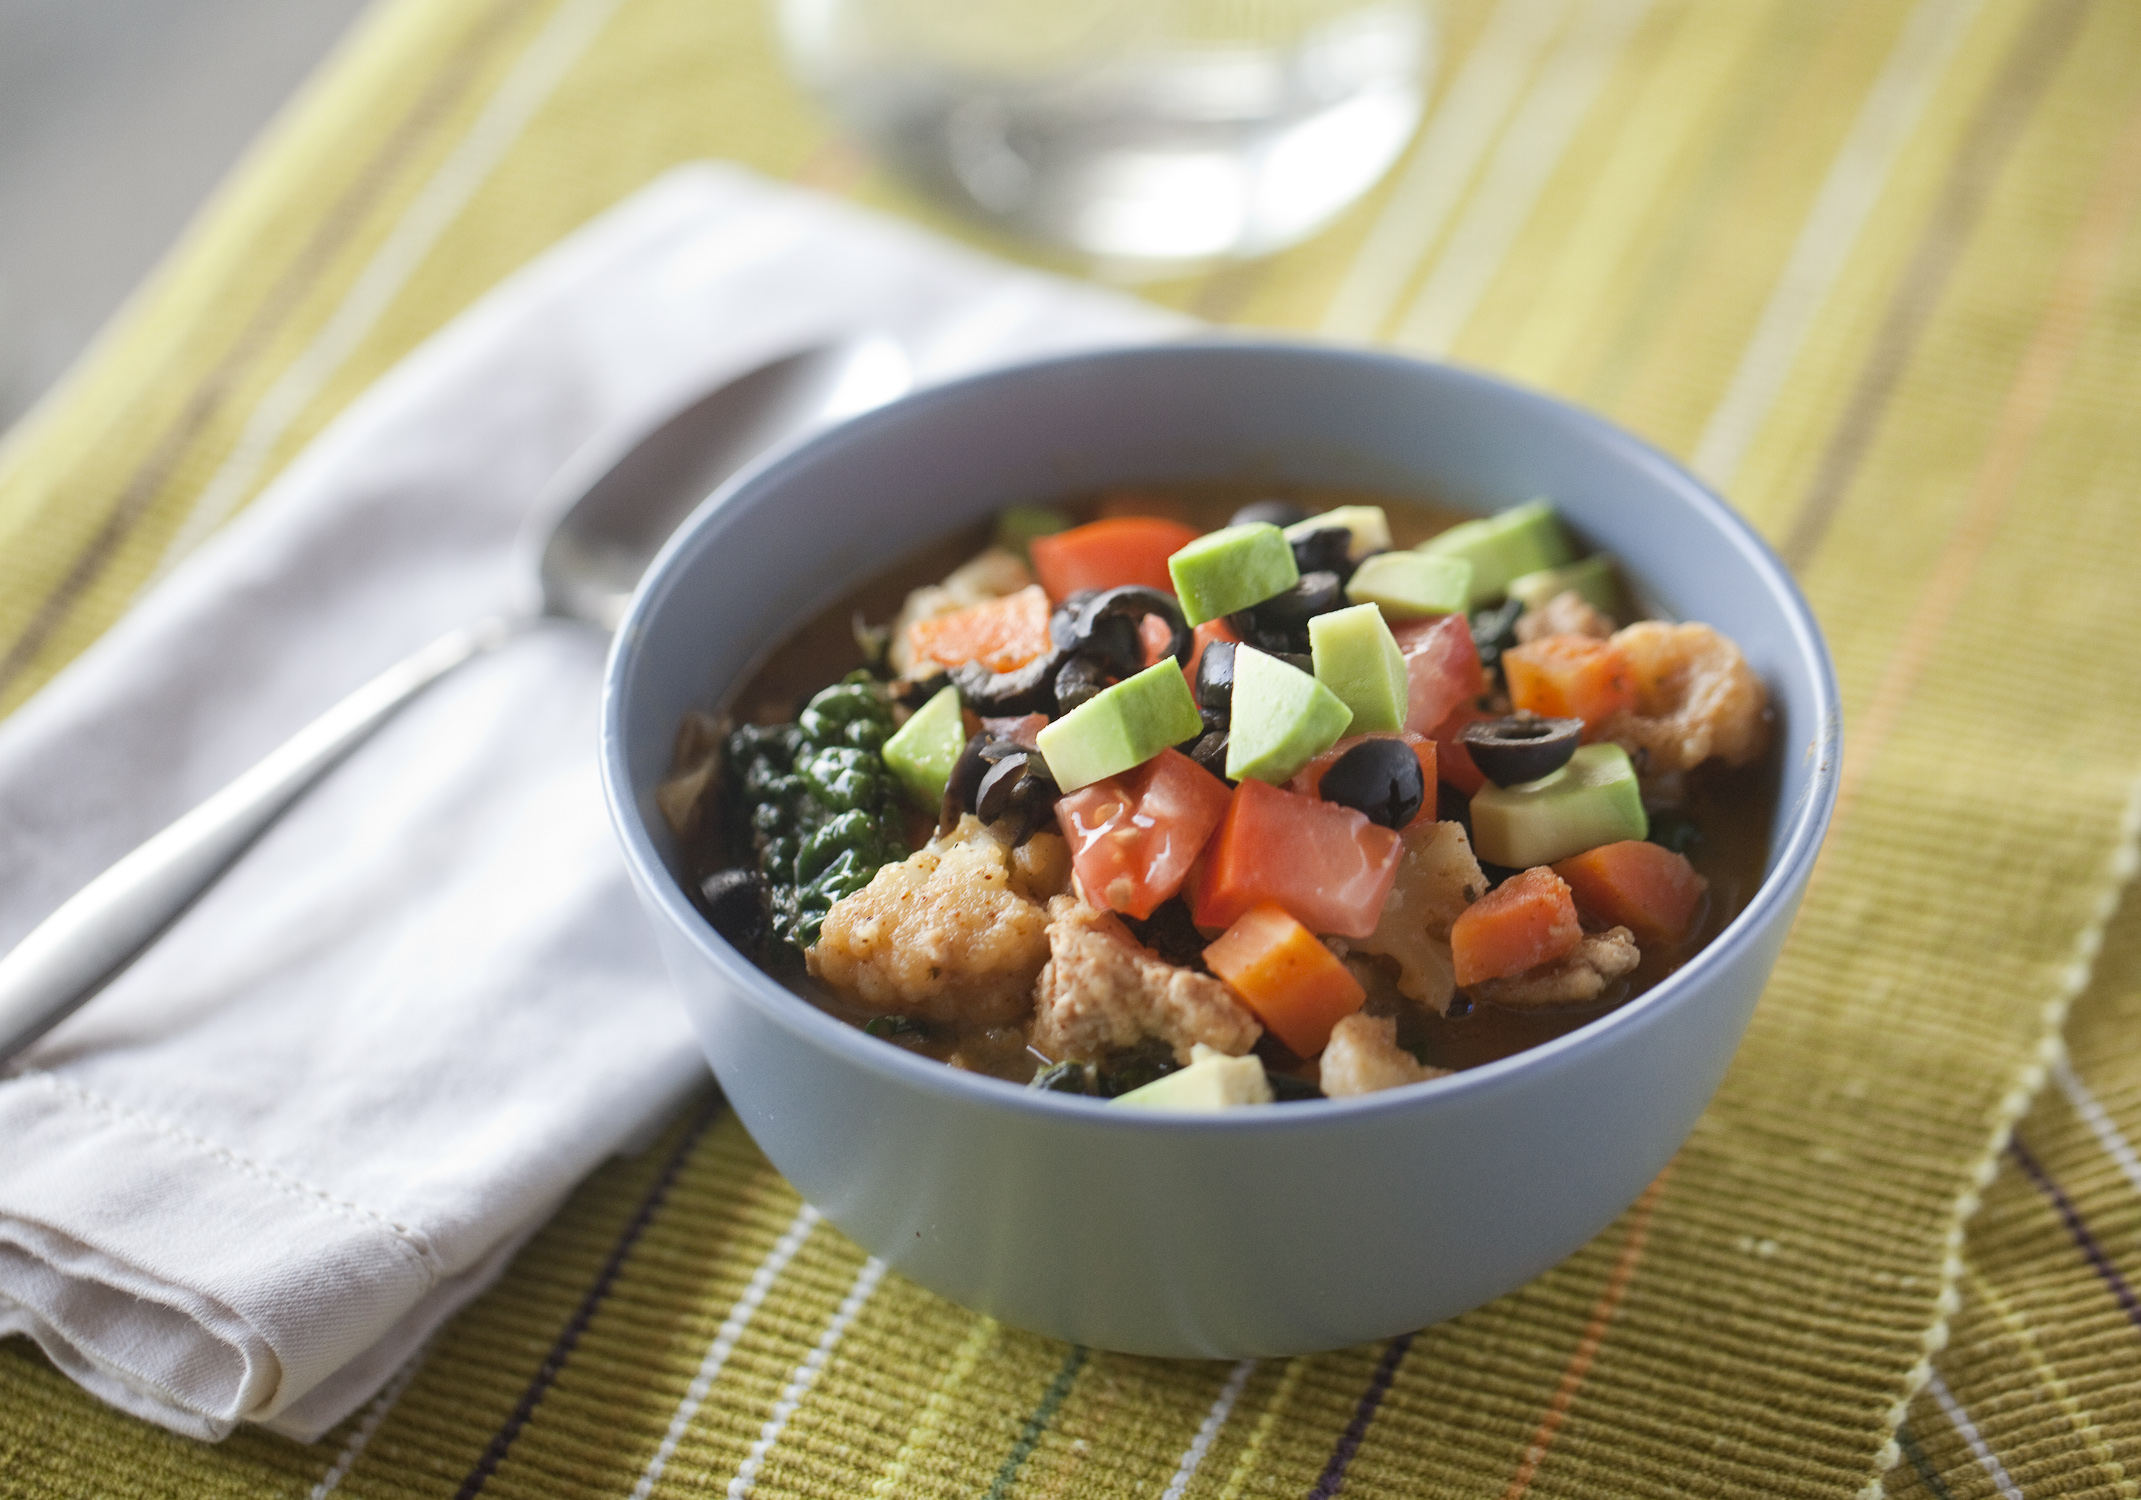 Hearty all purpose food for winter days!